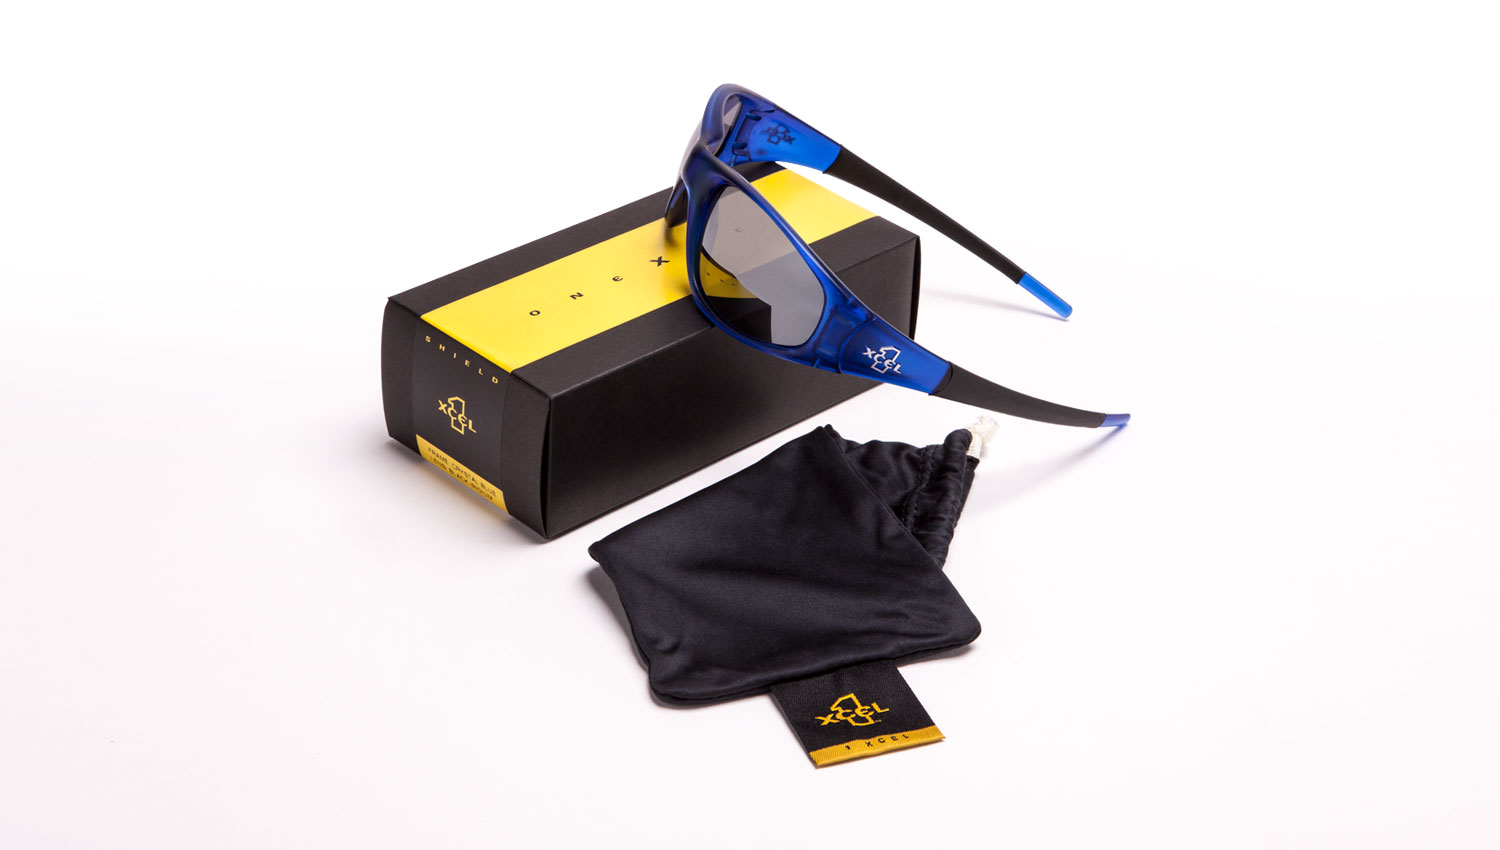 1XCEL sunglass packaging design